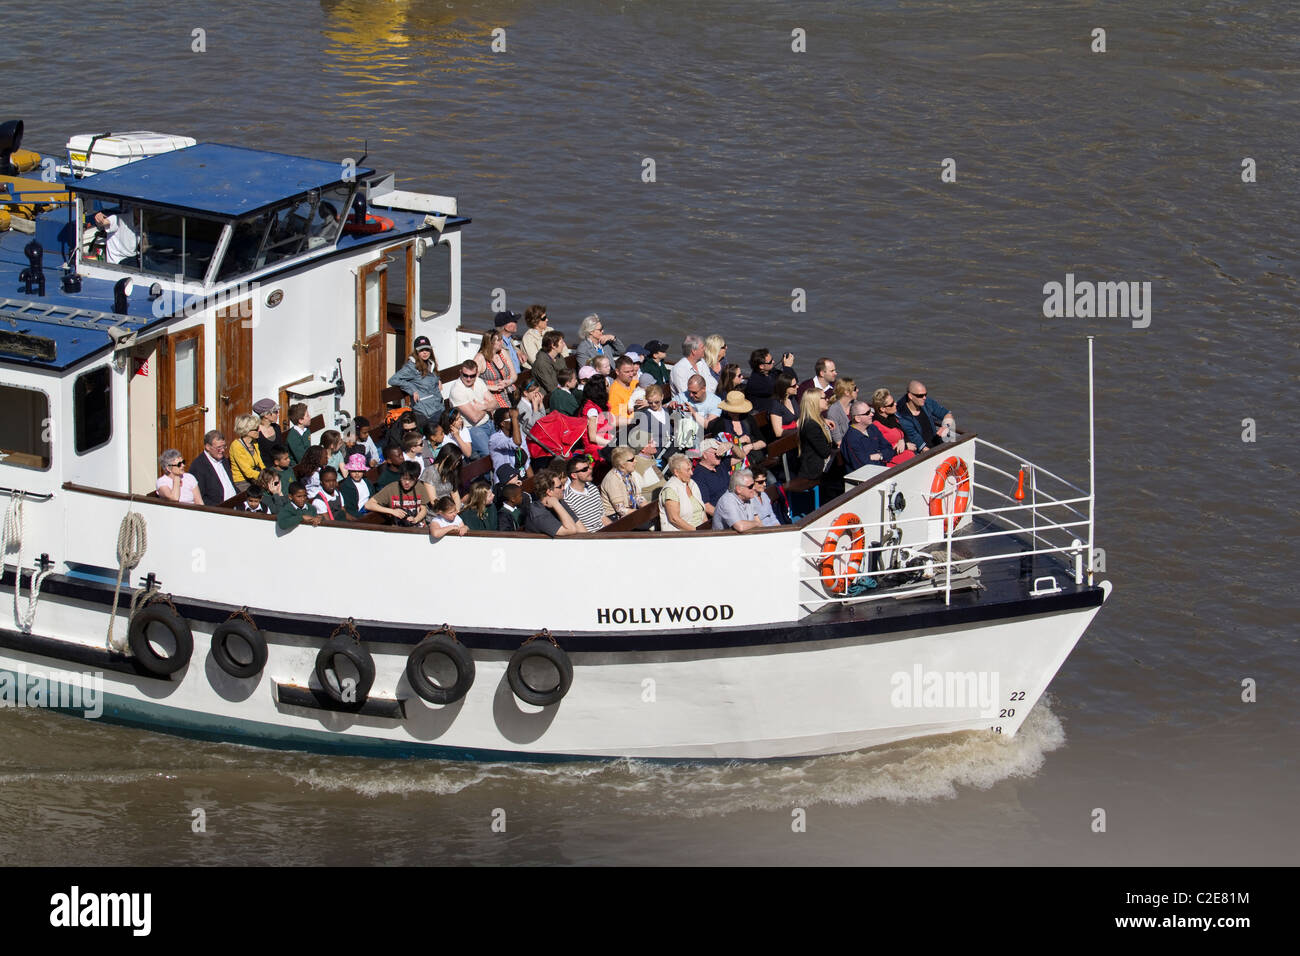 the boat Hollywood takes tourists on river thames cruise - Stock Image